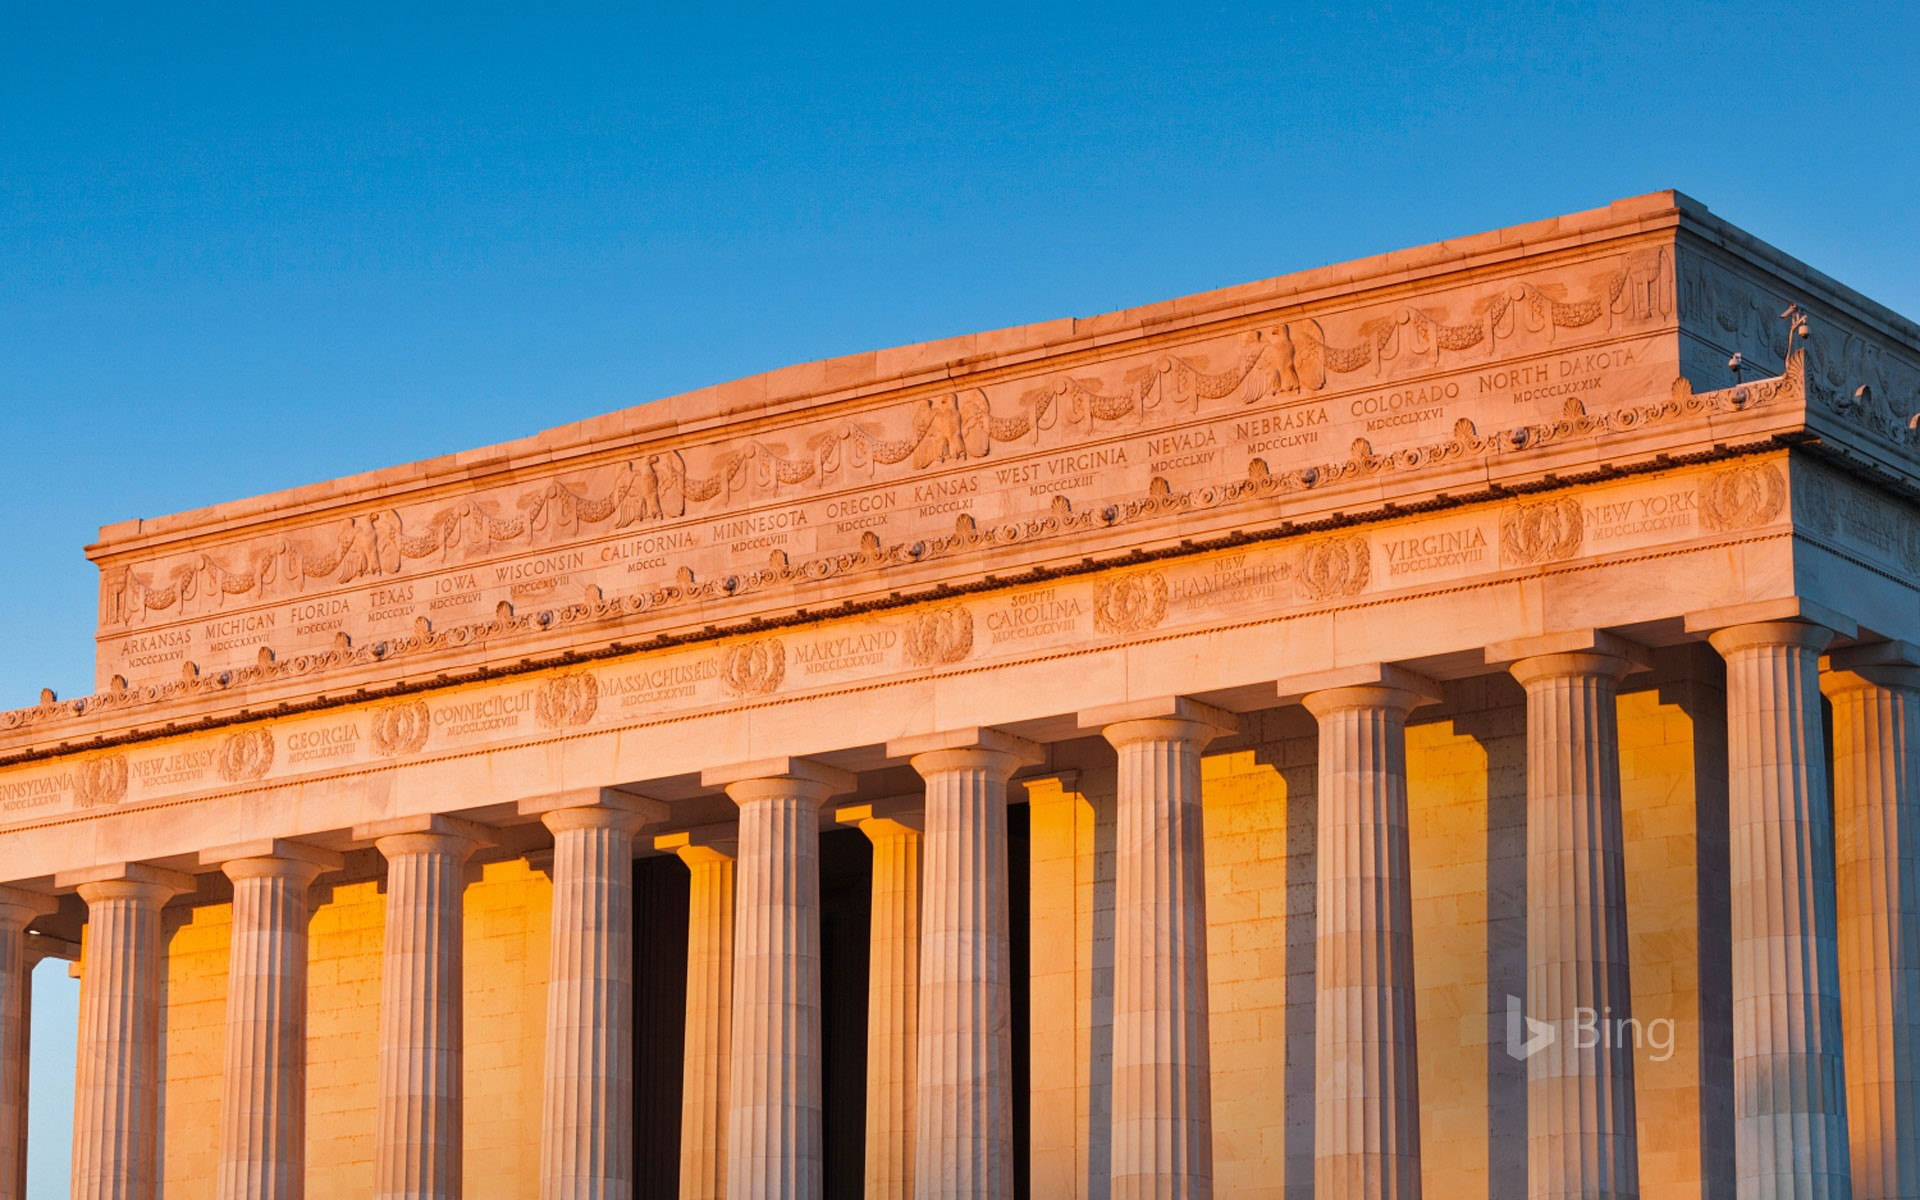 Detail of the Lincoln Memorial, Washington, DC